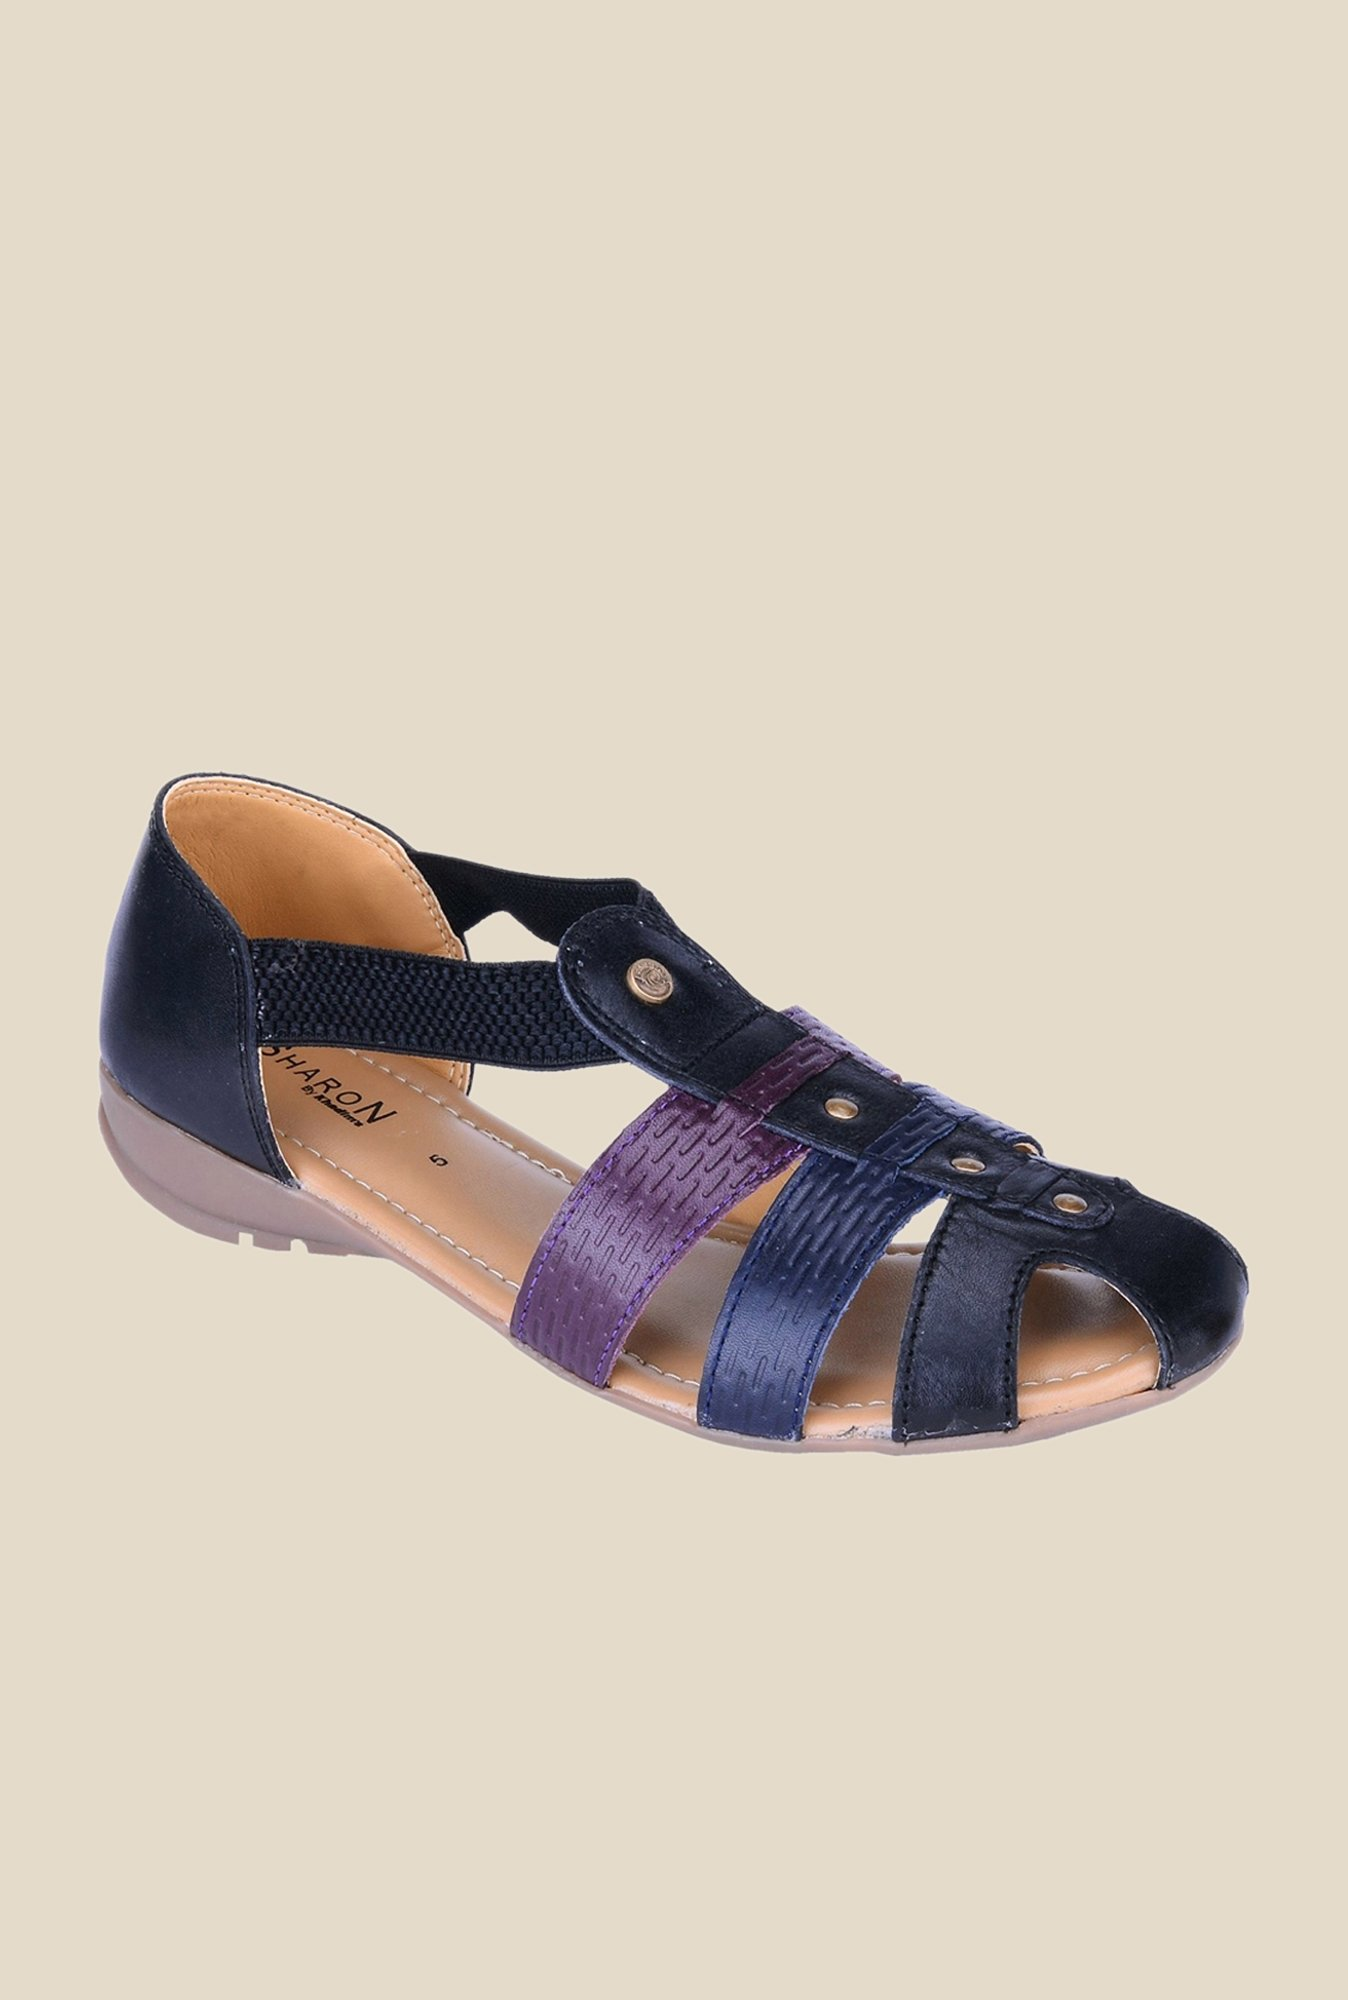 Khadim's Sharon Black & Purple Casual Sandals